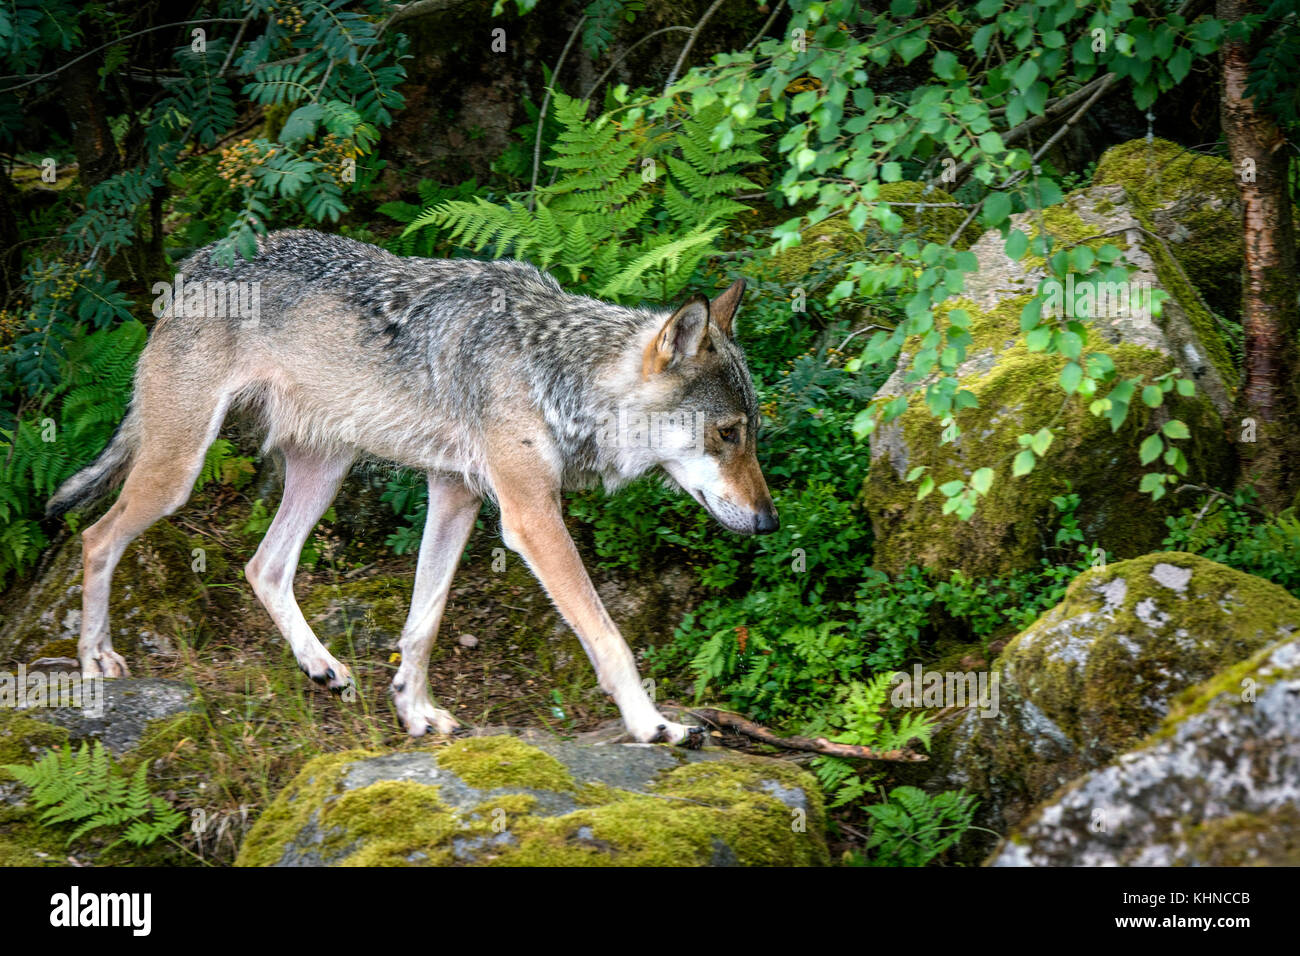 Grey wolf in a nordic forest in the summer walking on rocks - Stock Image